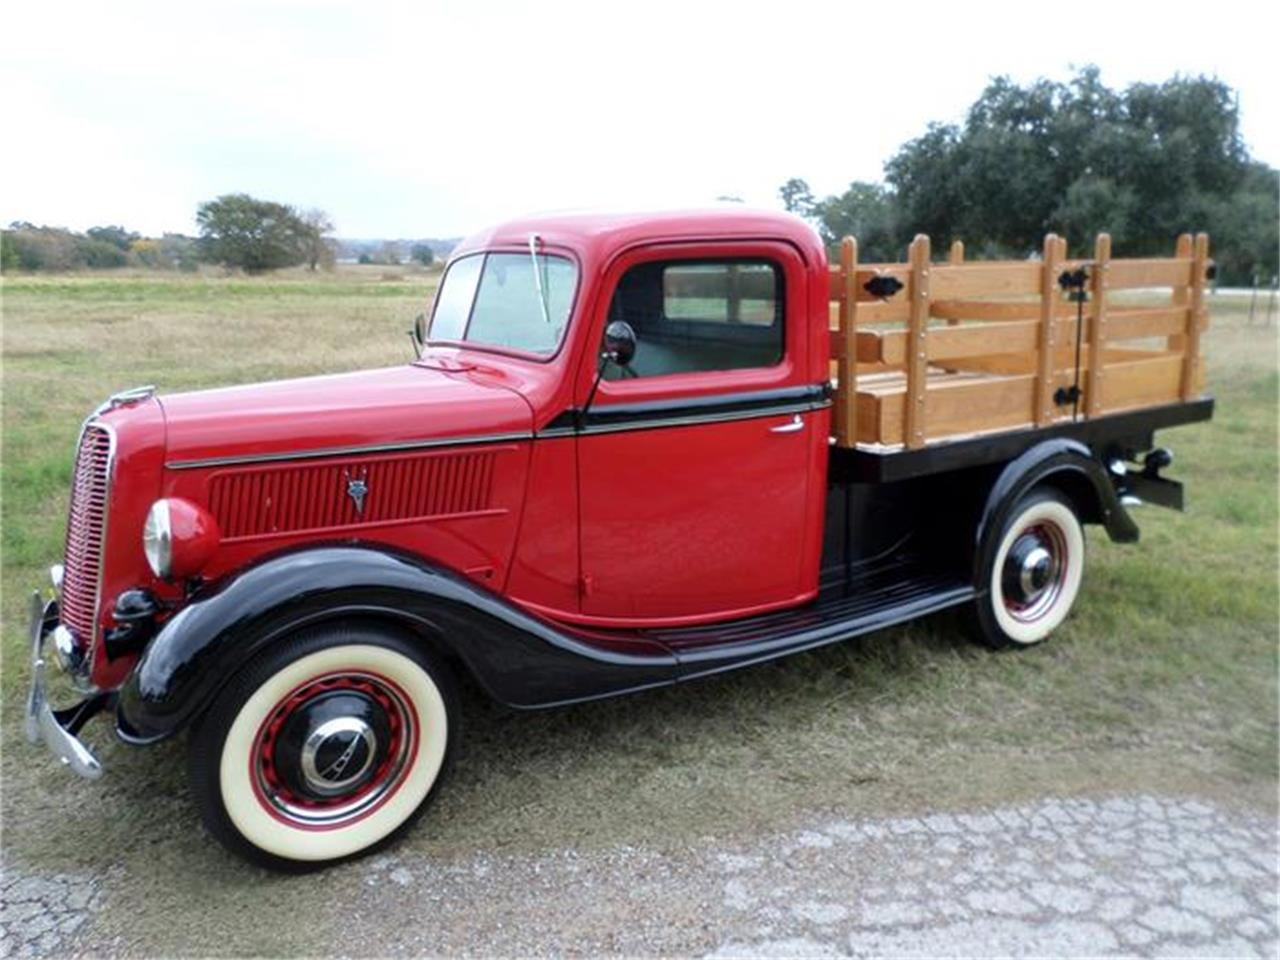 Texas Car Inspection >> 1937 Ford Pickup for Sale | ClassicCars.com | CC-610910